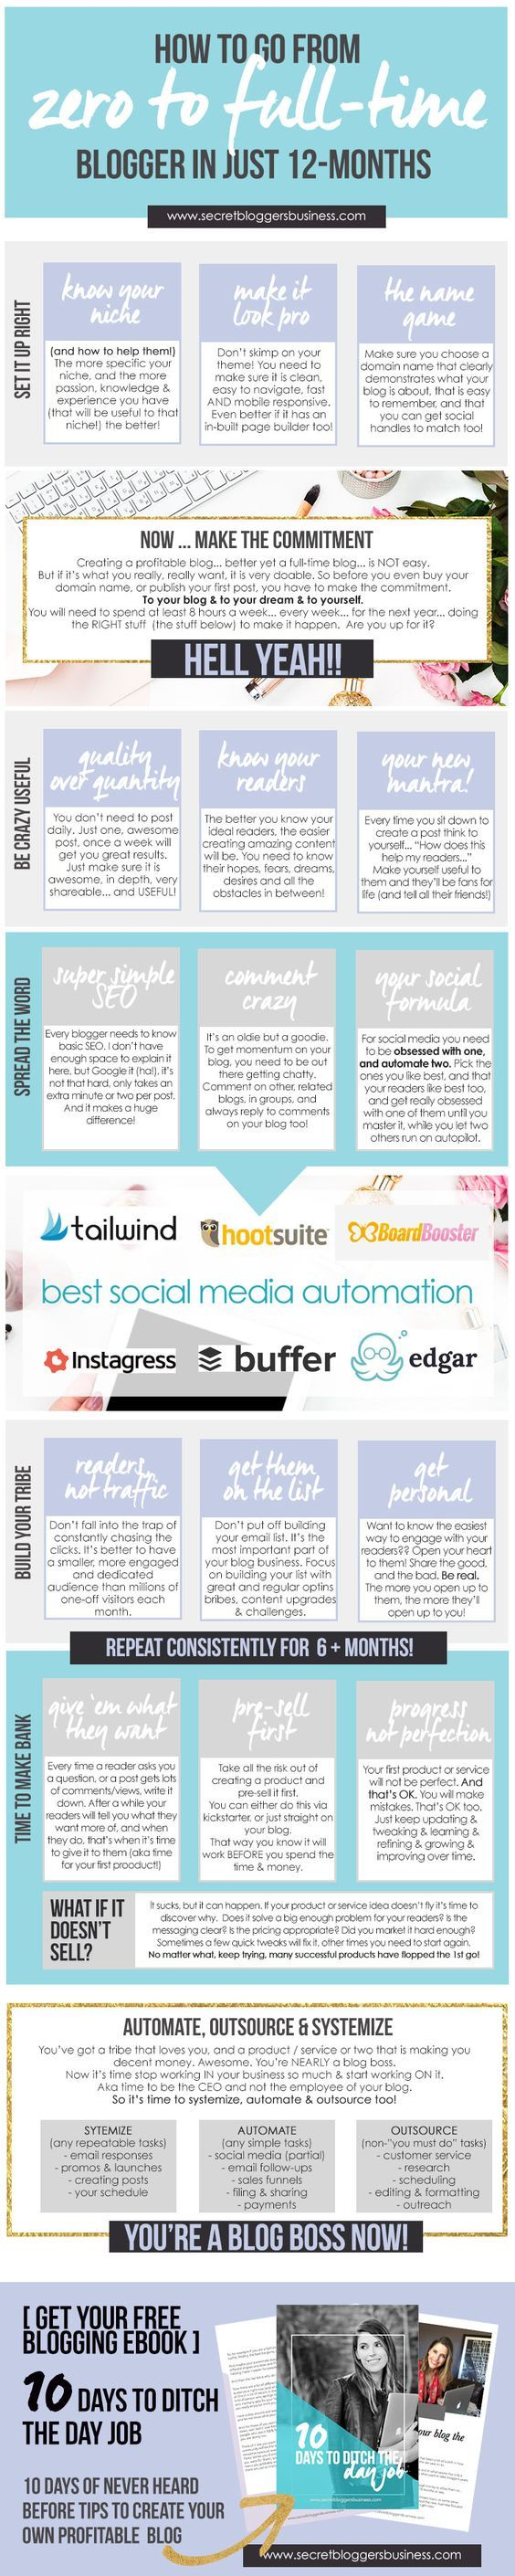 Want to know how to REALLY create a successful blog, so you can blog full-time and spend your days doing something you love? Check out this simple step-by-step guide of everything you need to do to become a professional blogger. Yes it takes work, but it is doable. And if you want more help growing your blog I've put my best blog advice into a FREE 10-day blogging course which you can download now right here > https://www.secretbloggersbusiness.com/join-10-days-to-ditch-the-day-job/